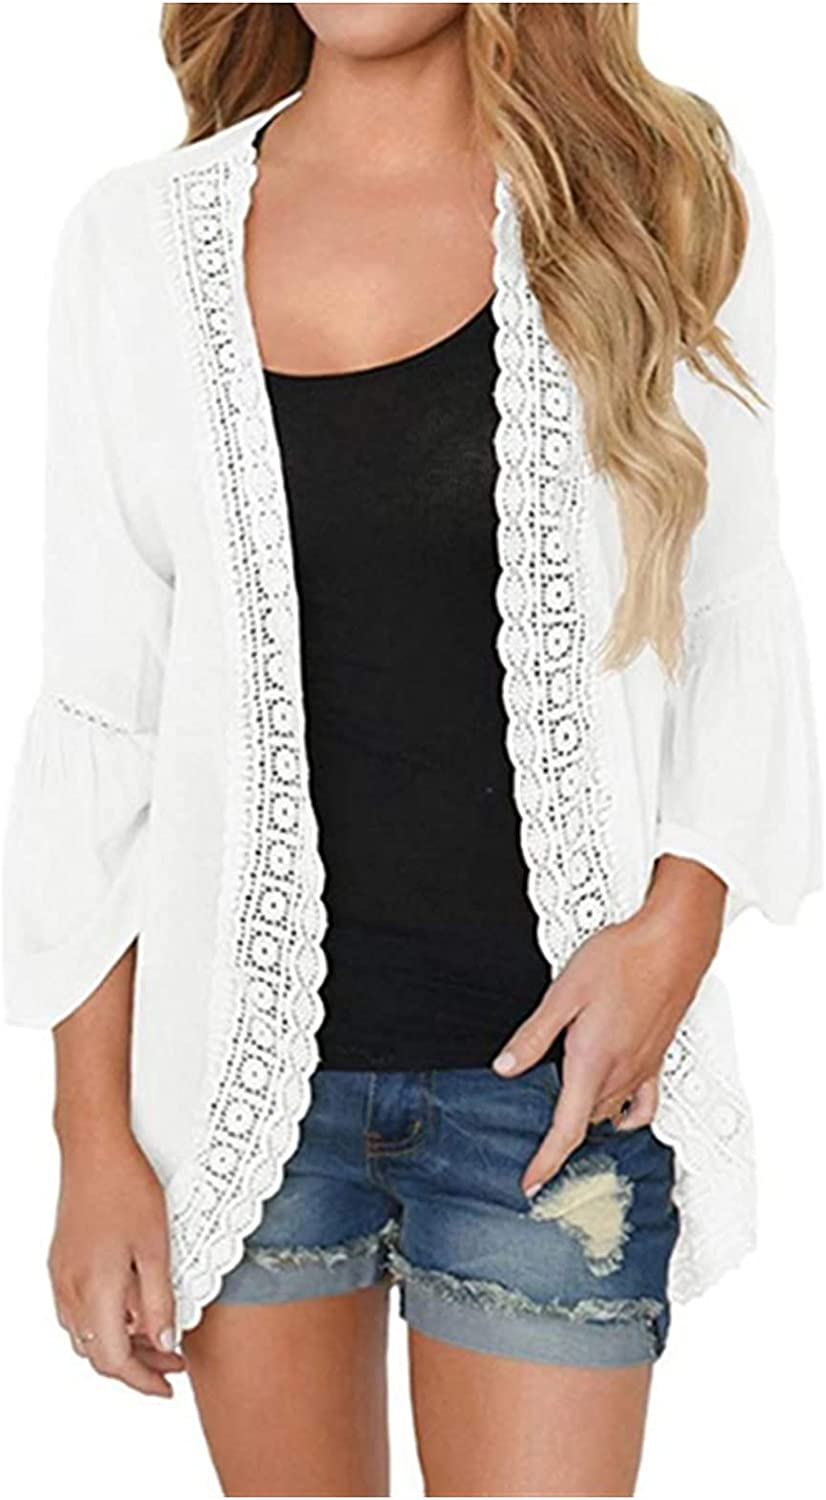 VonVonCo Cardigan Sweaters for Women Casual Pure Lace Long Sleeve Chiffon Cardigan Loose Kimono Blouse Tops